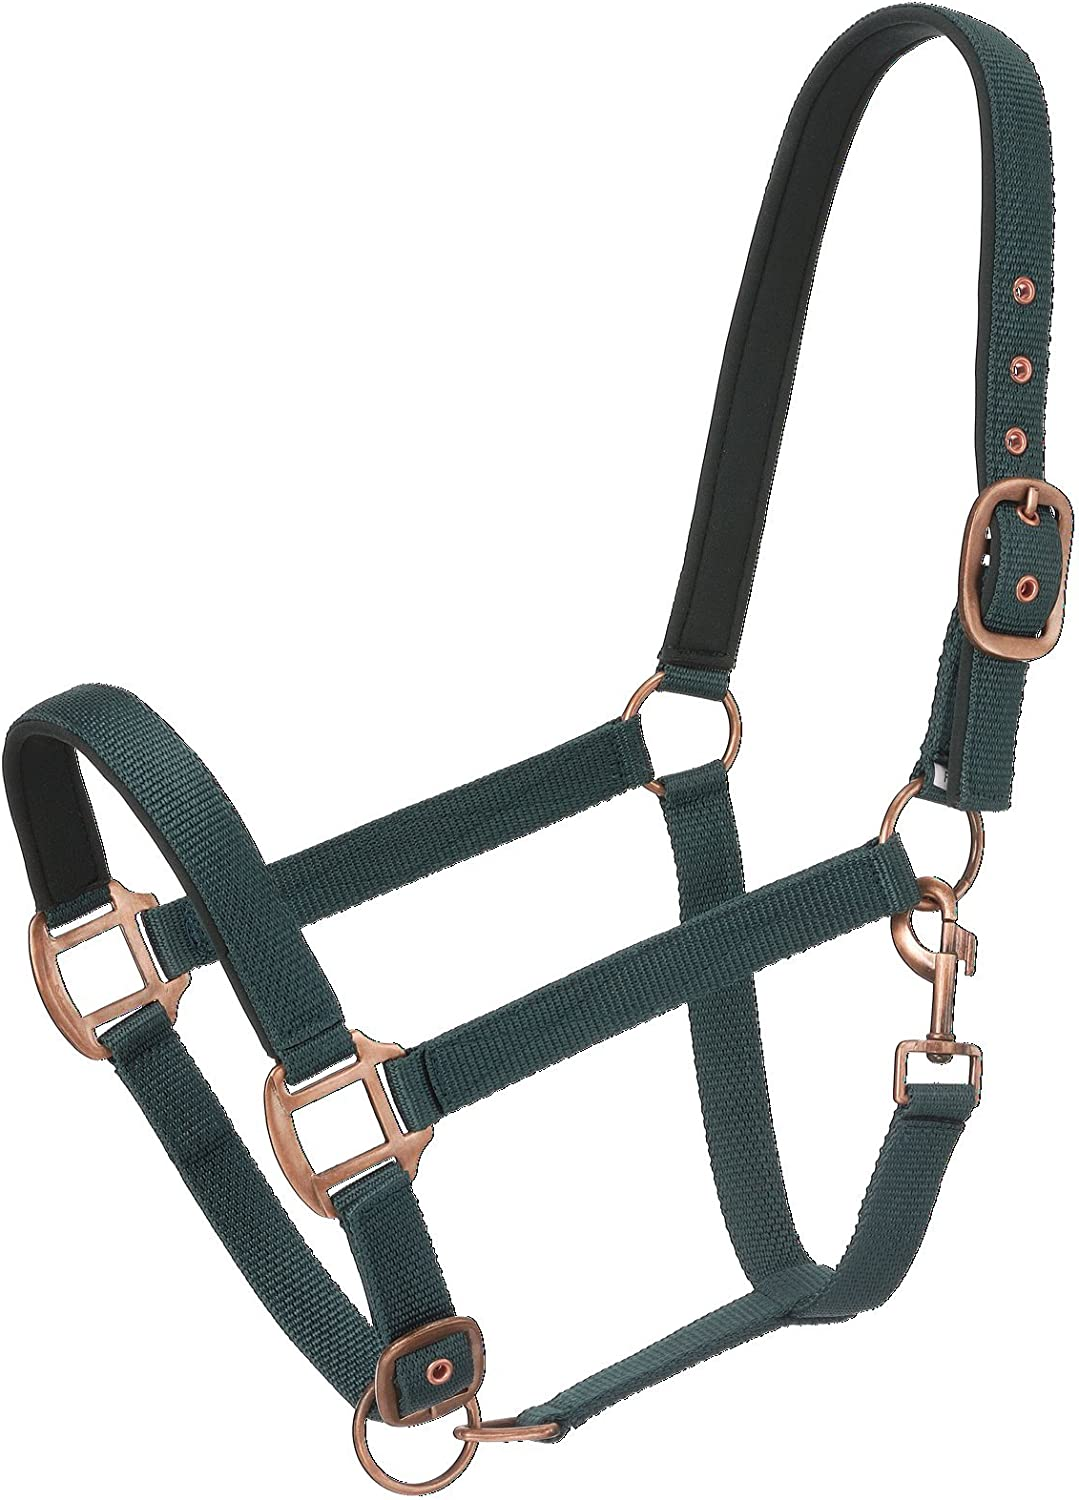 Tough 1 Tough1 Neoprene Padded Halter Antique Hardware